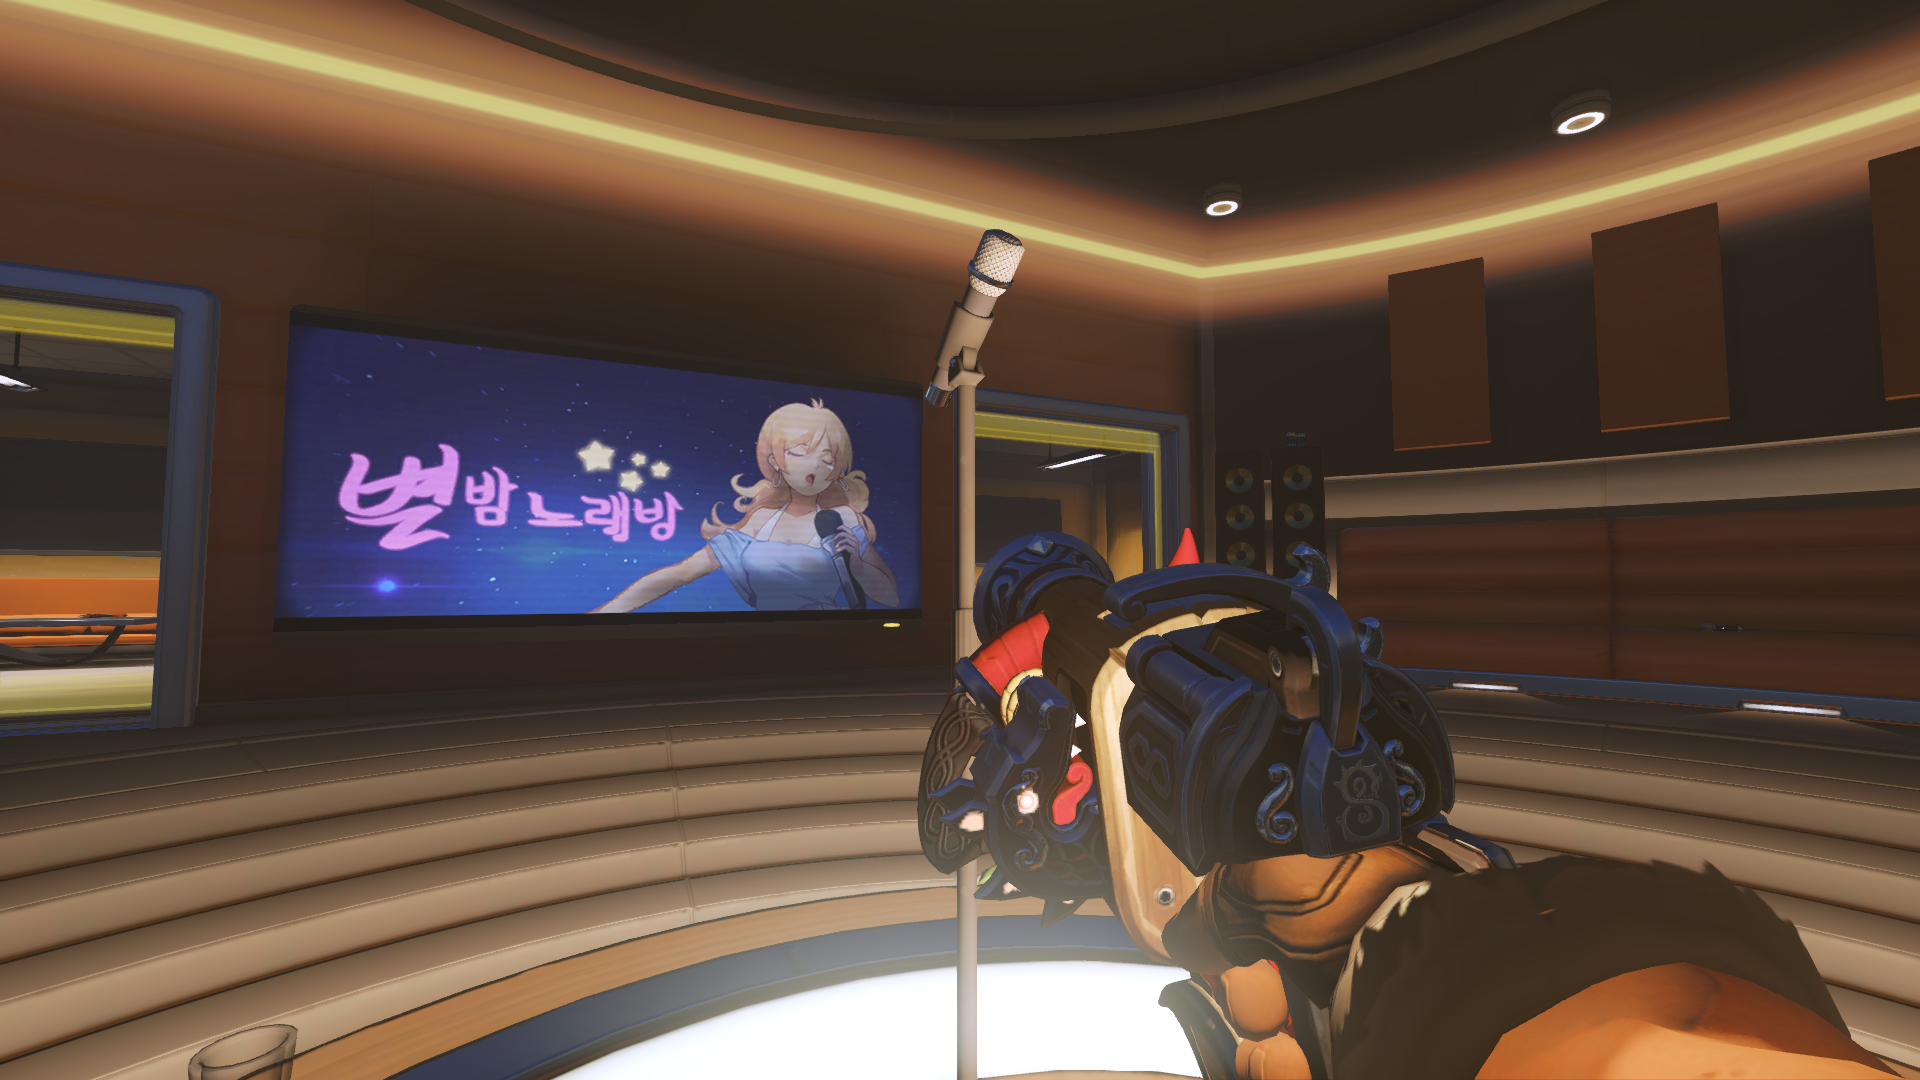 Torbjörn And McCree Can Now Use The Karaoke Machine On